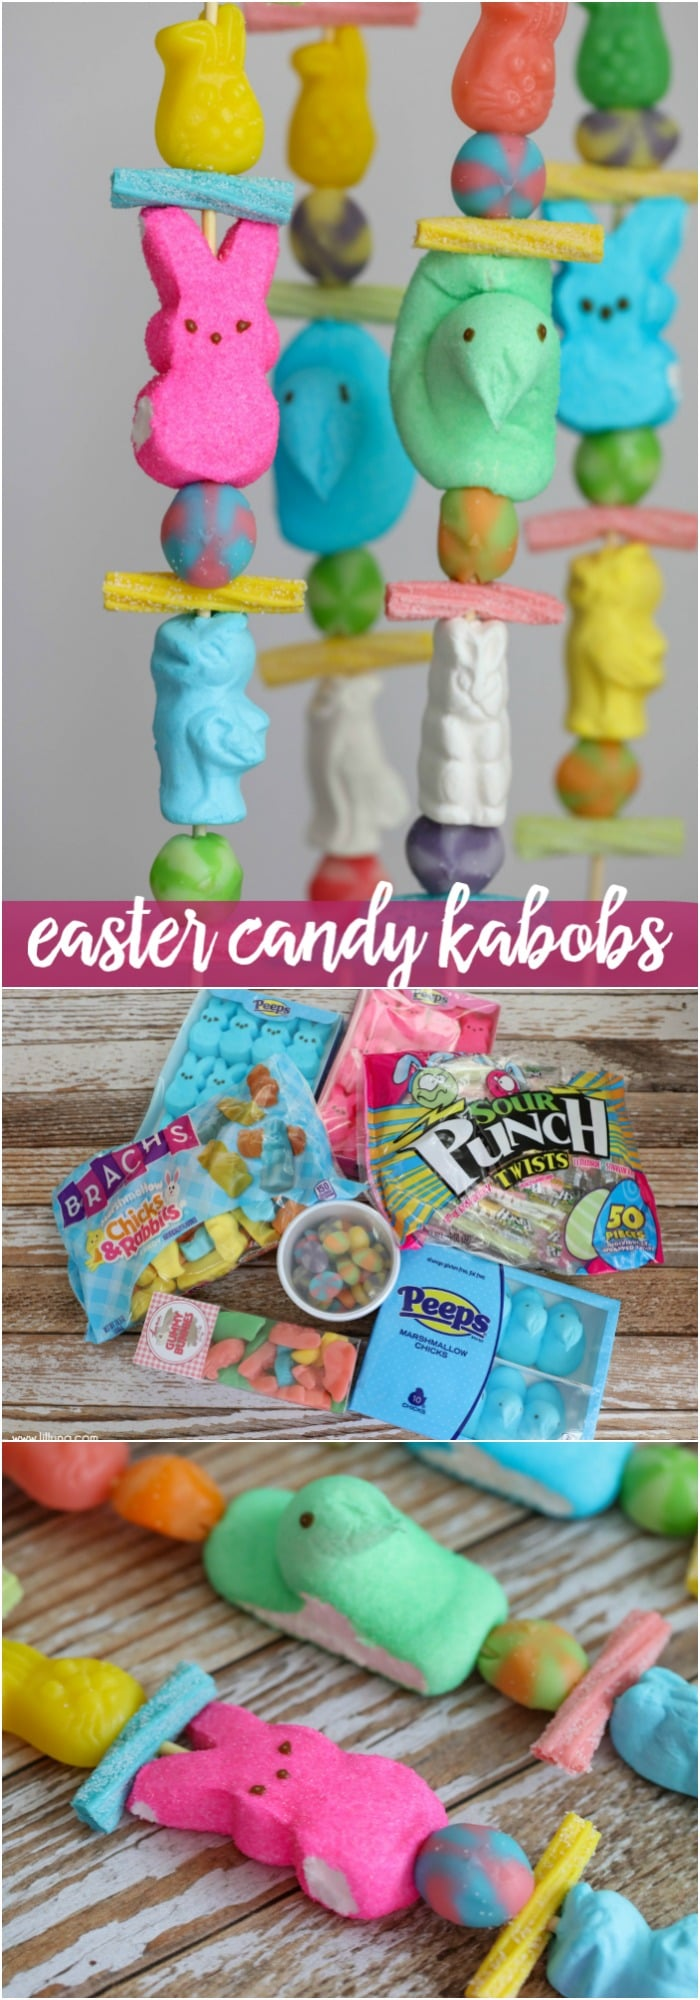 Easter Candy Kabobs - a simple, quick and fun treat to make for Easter using all the delicious gummy candy found this holiday!